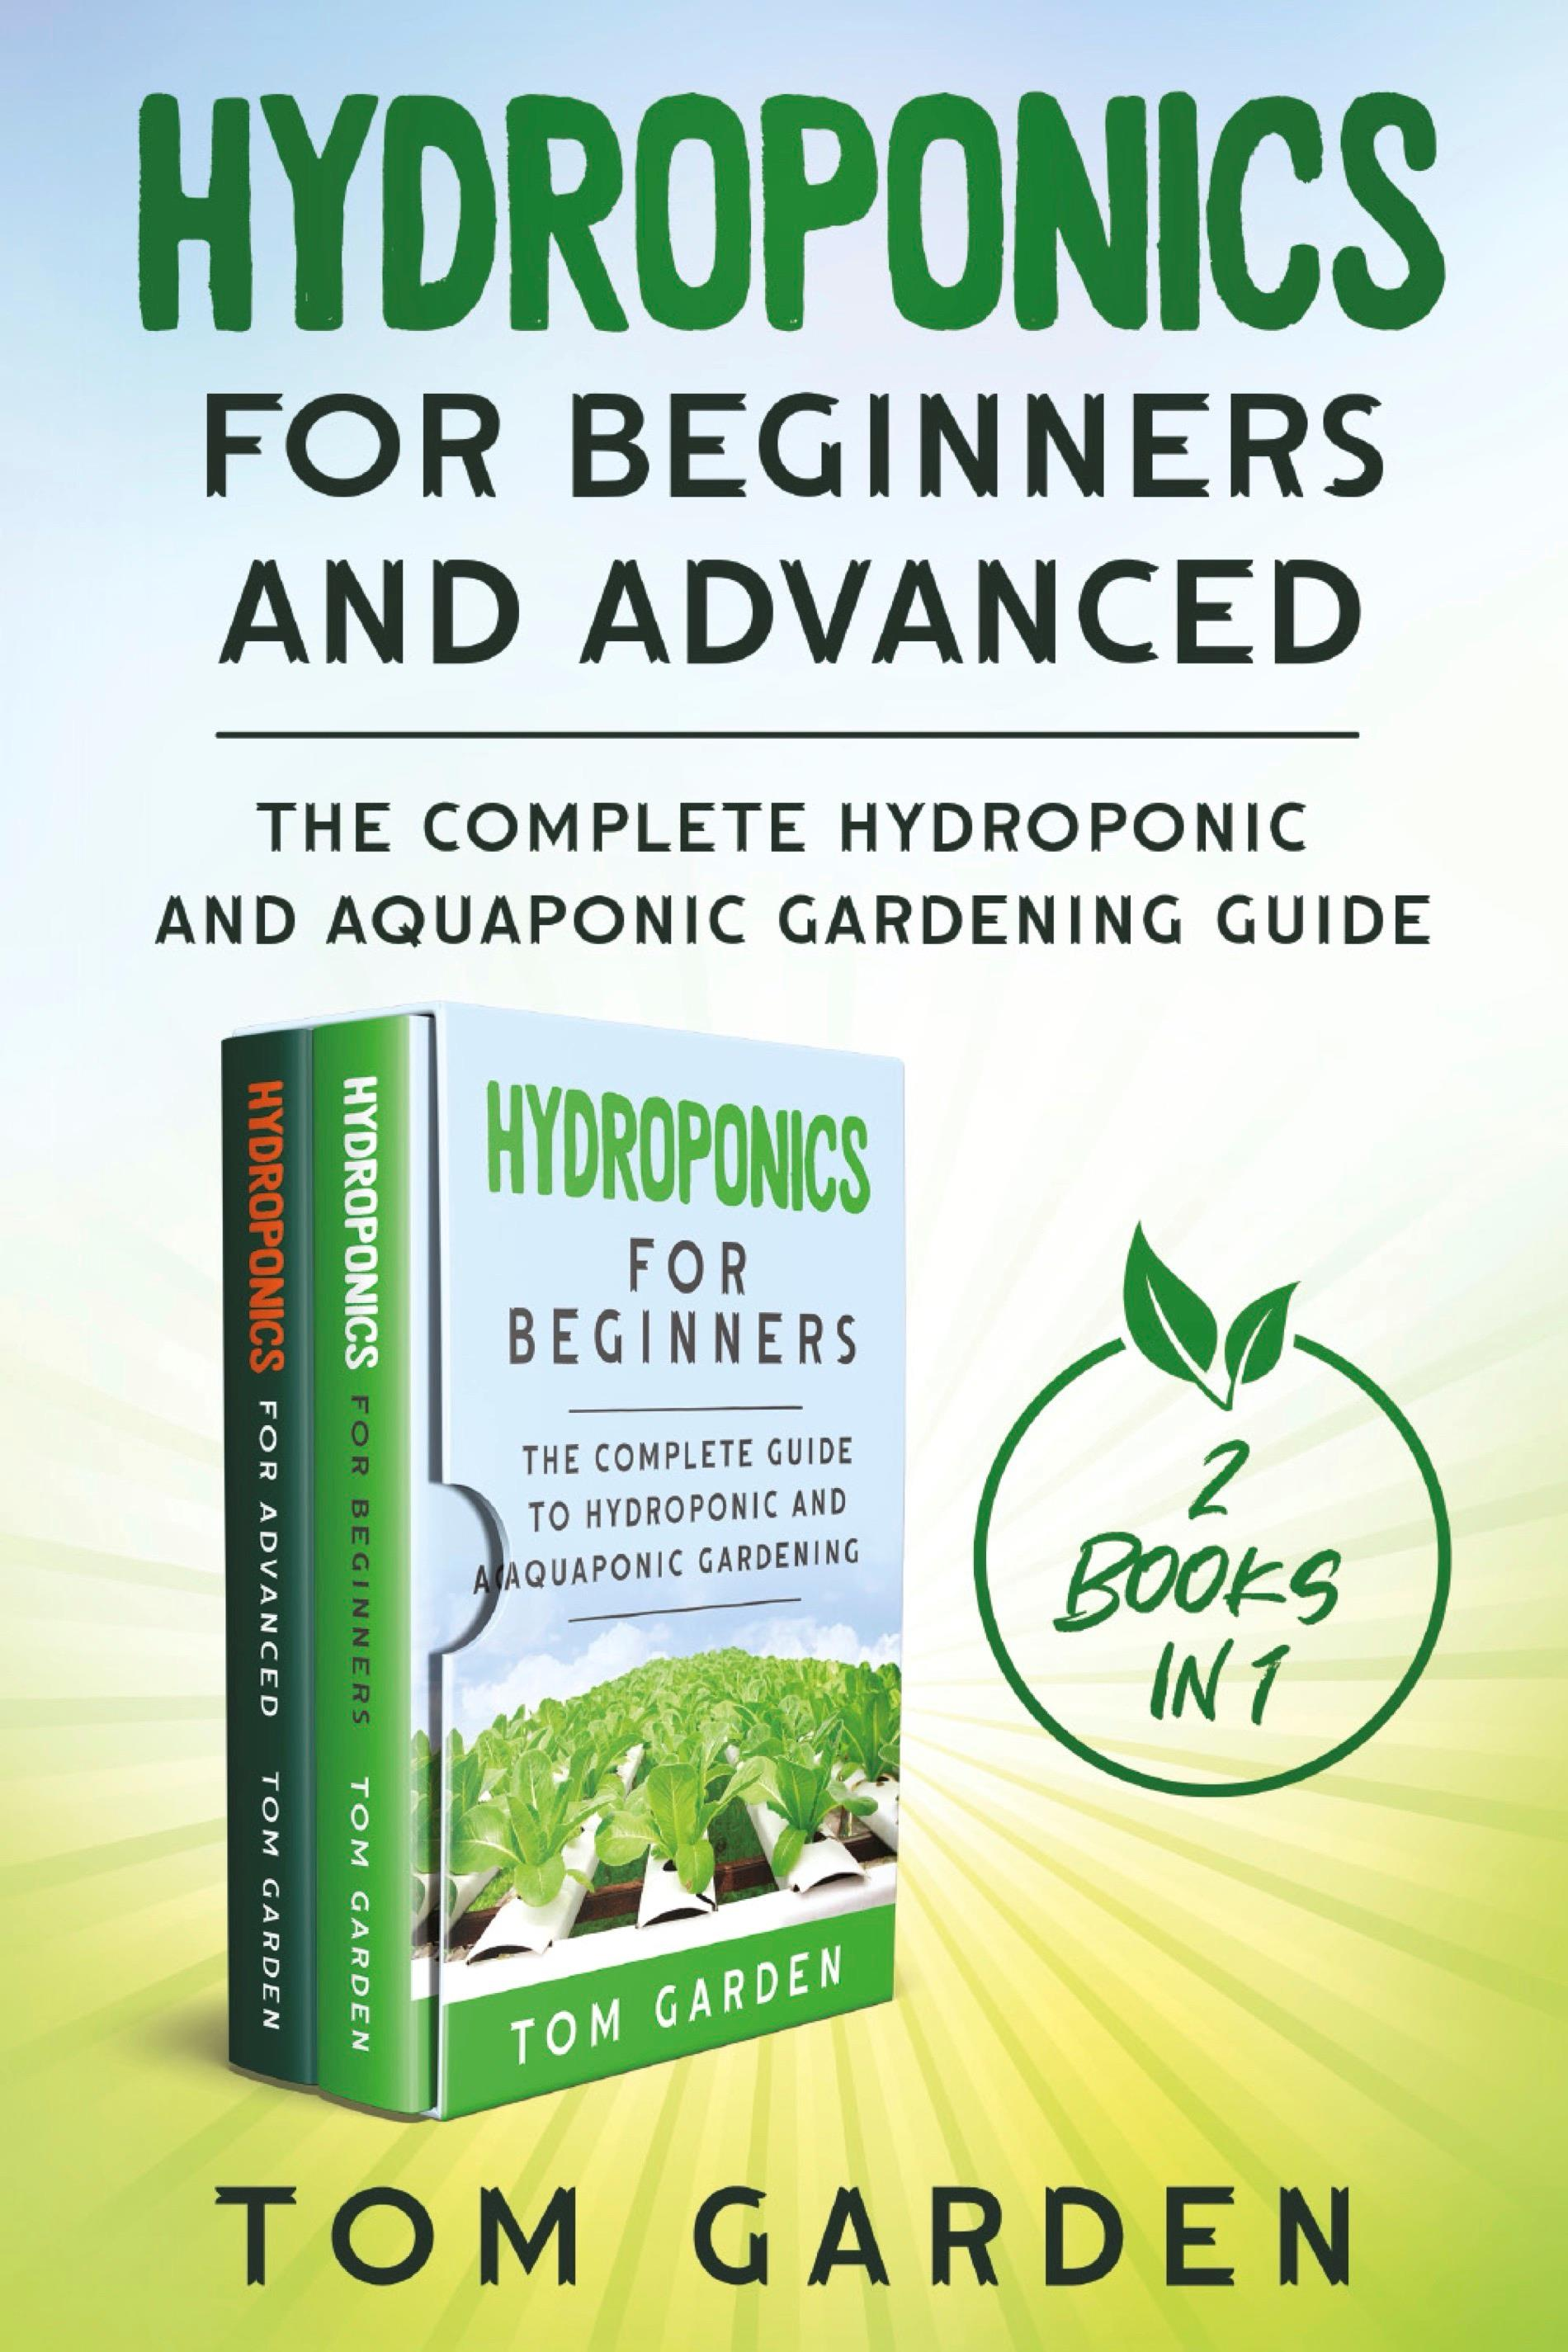 Hydroponics for Beginners and Advanced (2 Books in 1)